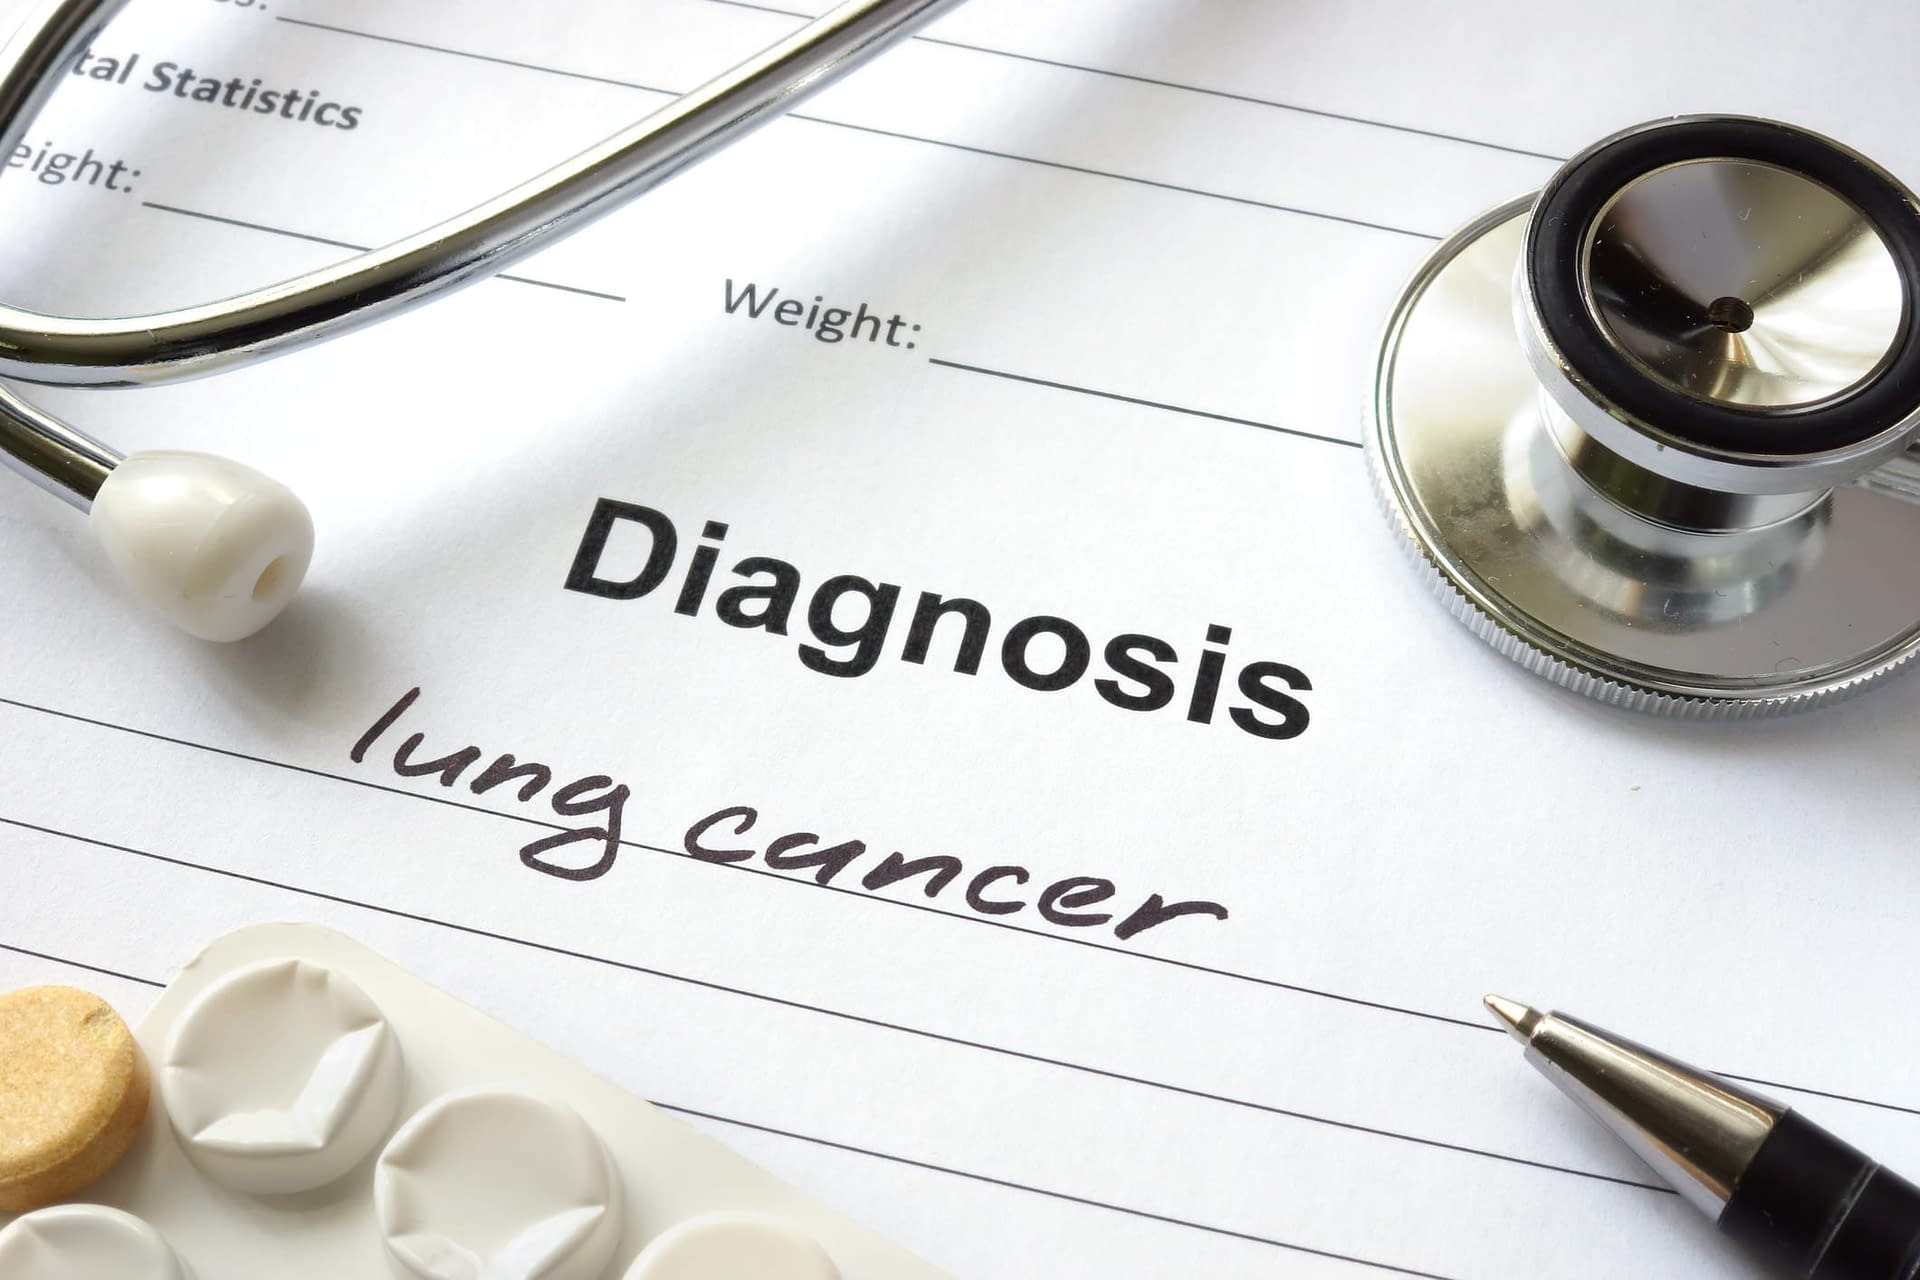 Lung Cancer Diagnosis Paper